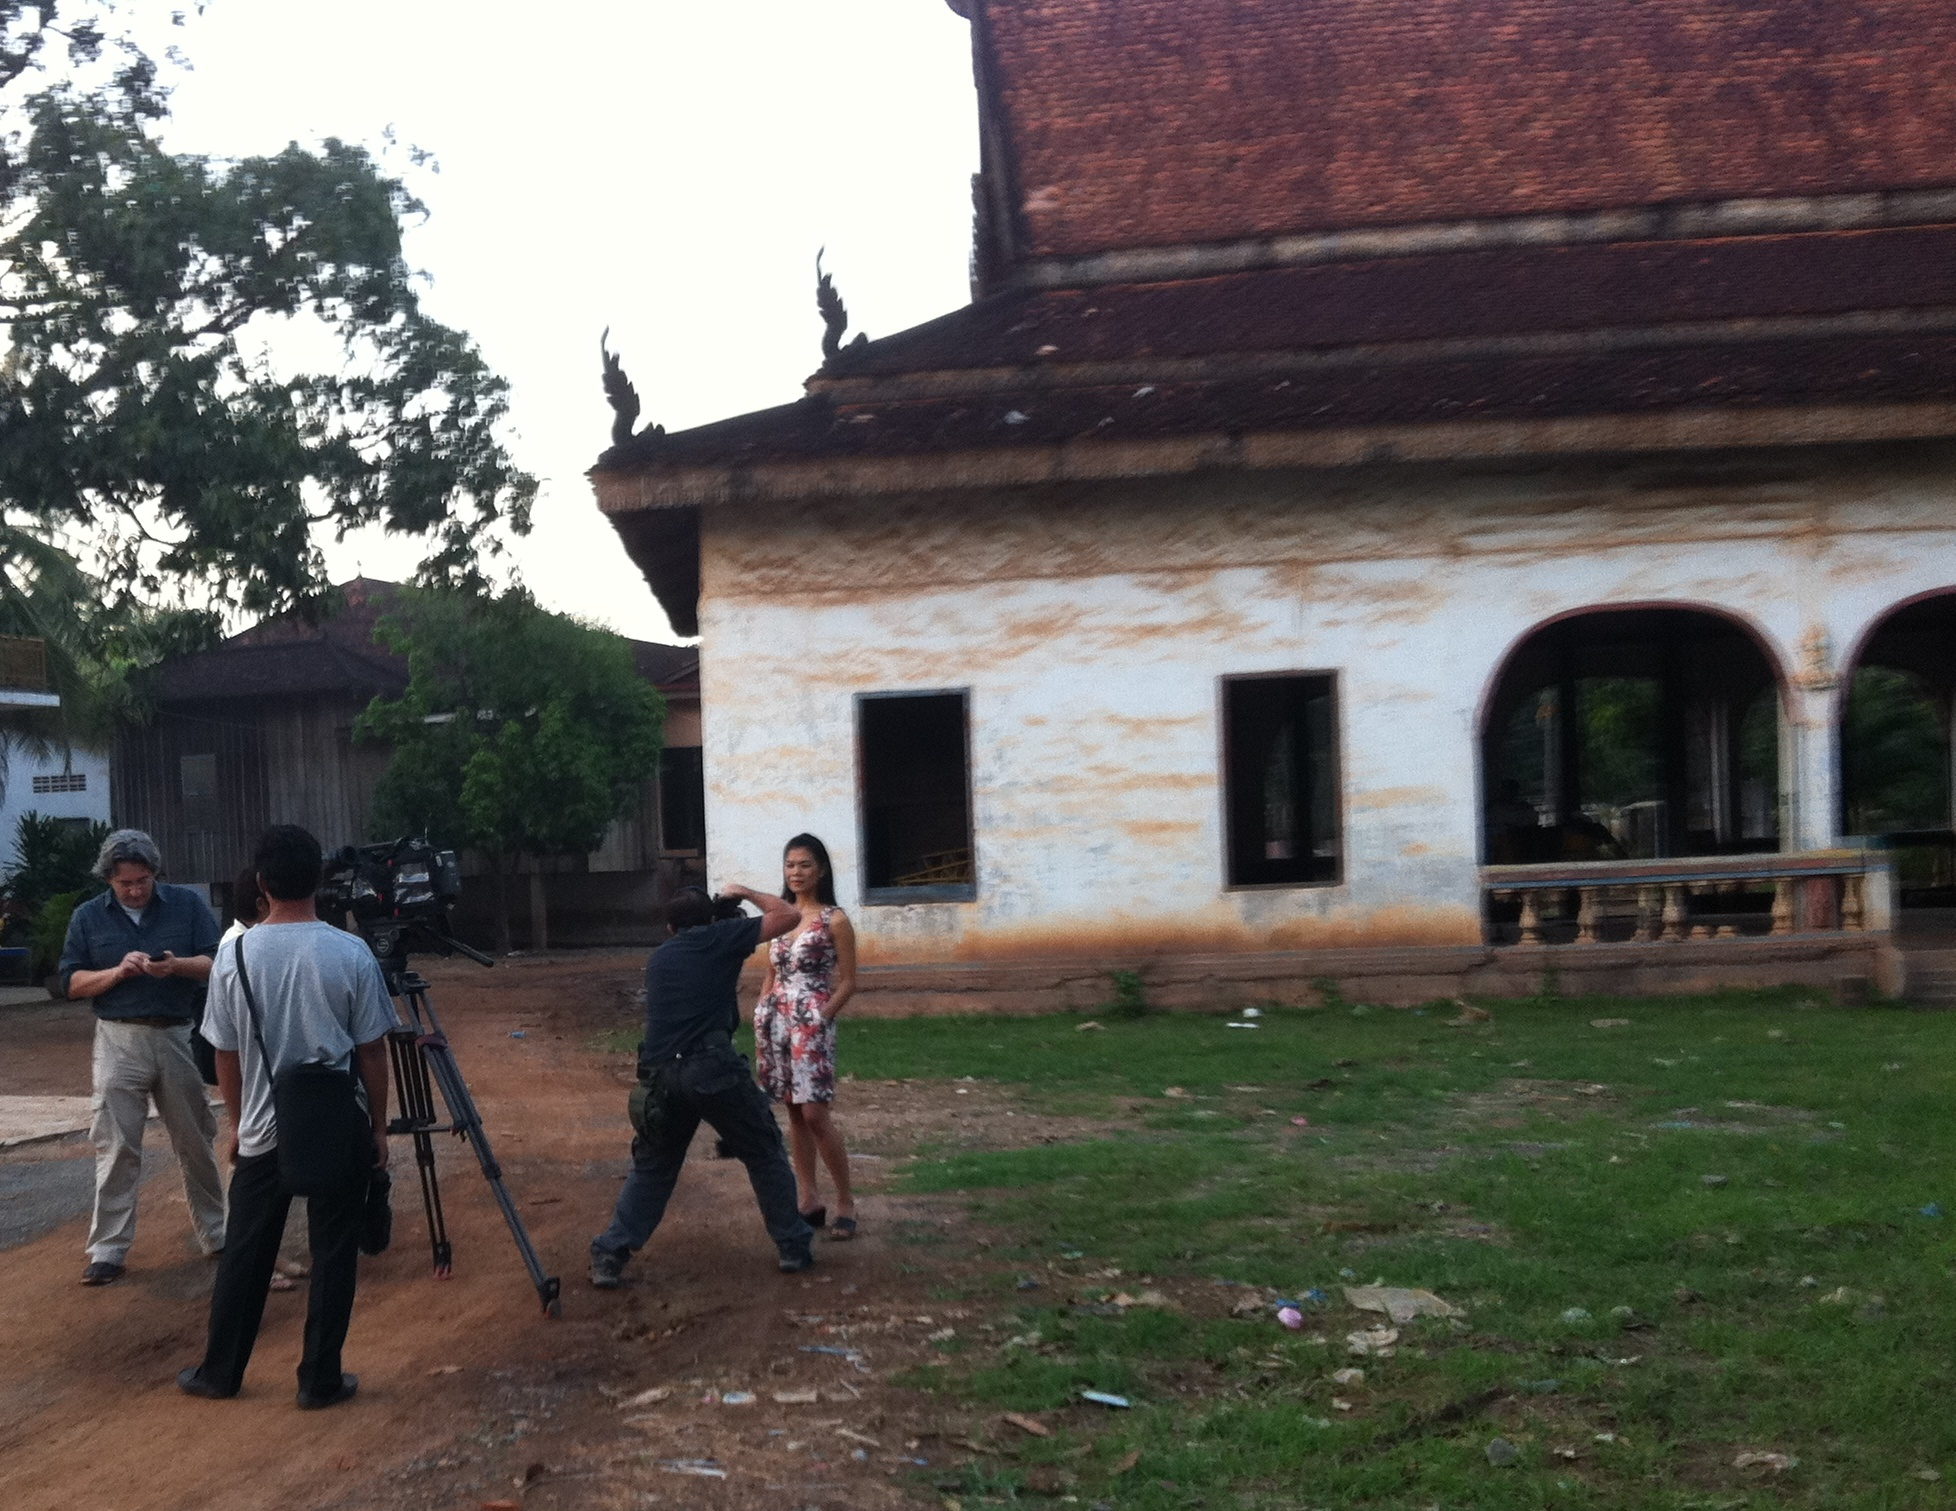 Theary Seng BBC filming at Wat Champa, 20 Nov. 2011